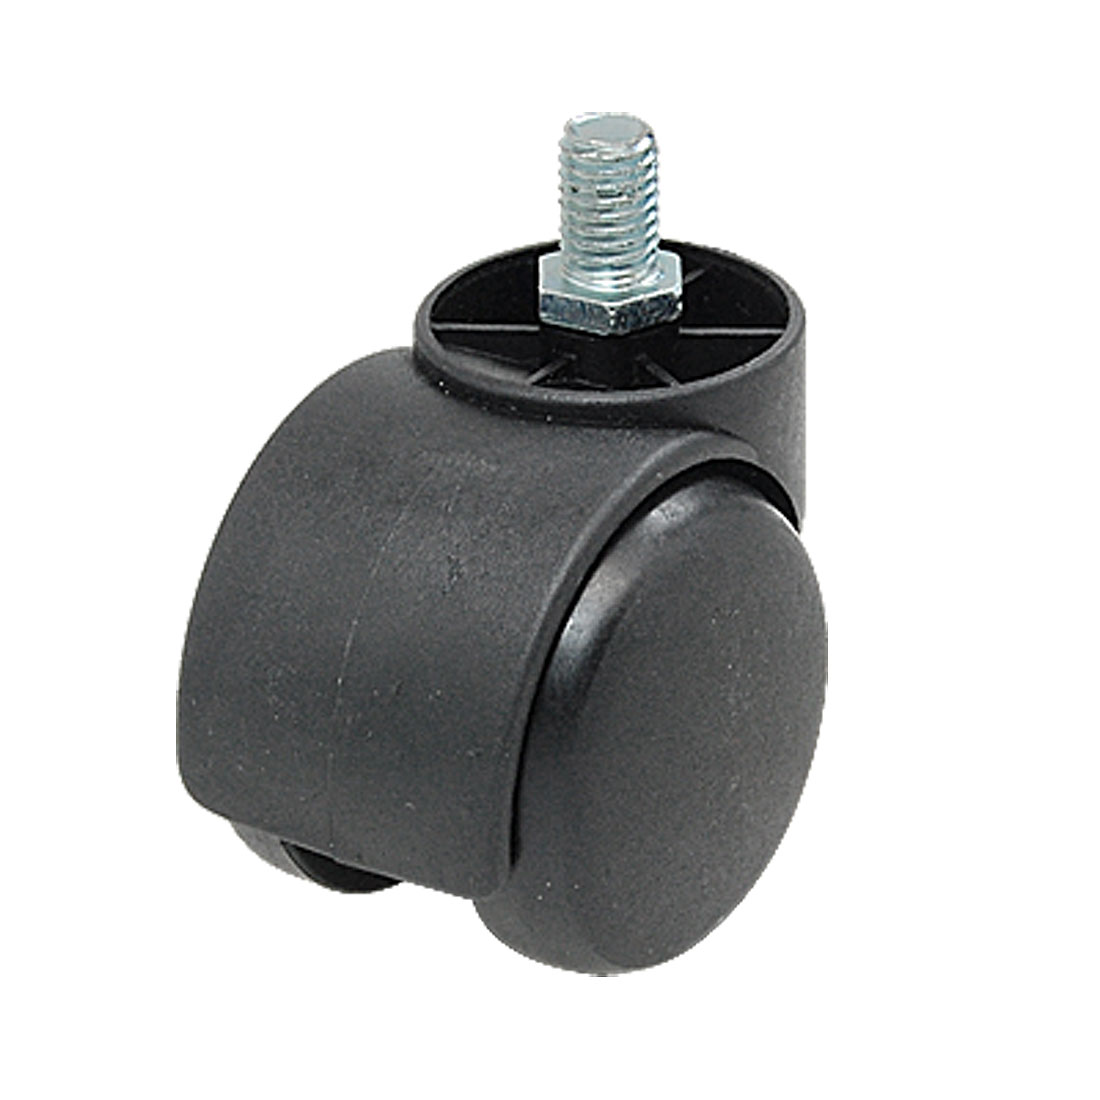 M10 Threaded Stem Connector Twin-wheel Black Chair Trolley Caster